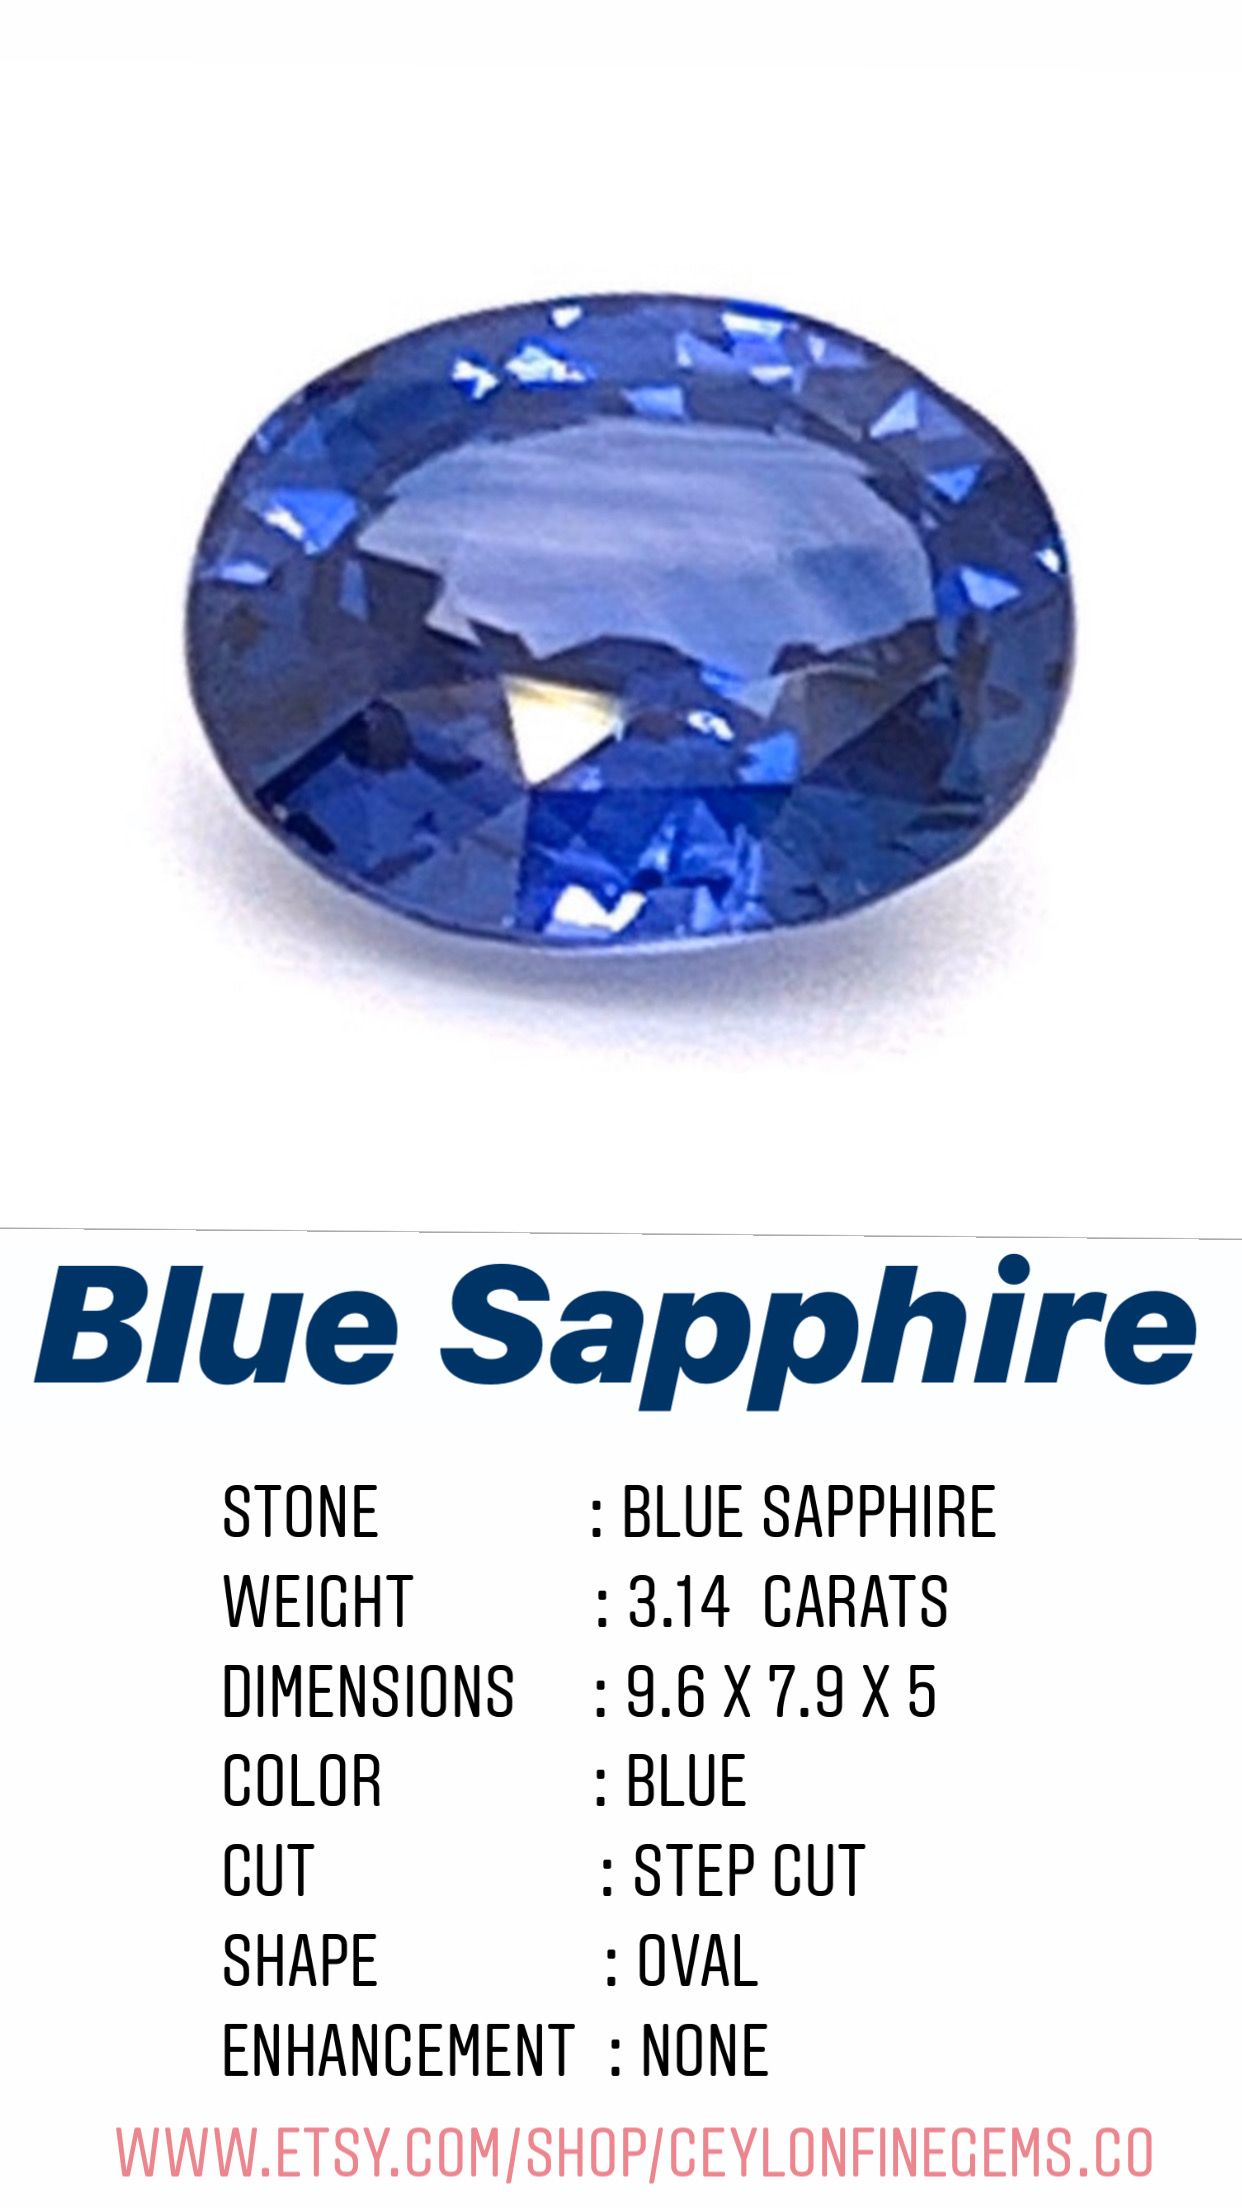 Blue Sapphire Loose 3 14 Carats Blue Blue Sapphire Blue Sapphire Engagement Ring Blue Sapphire For Jewelry Making Gemstone For Gift In 2020 Sapphire Engagement Ring Blue Engagement Rings Sapphire Blue Sapphire